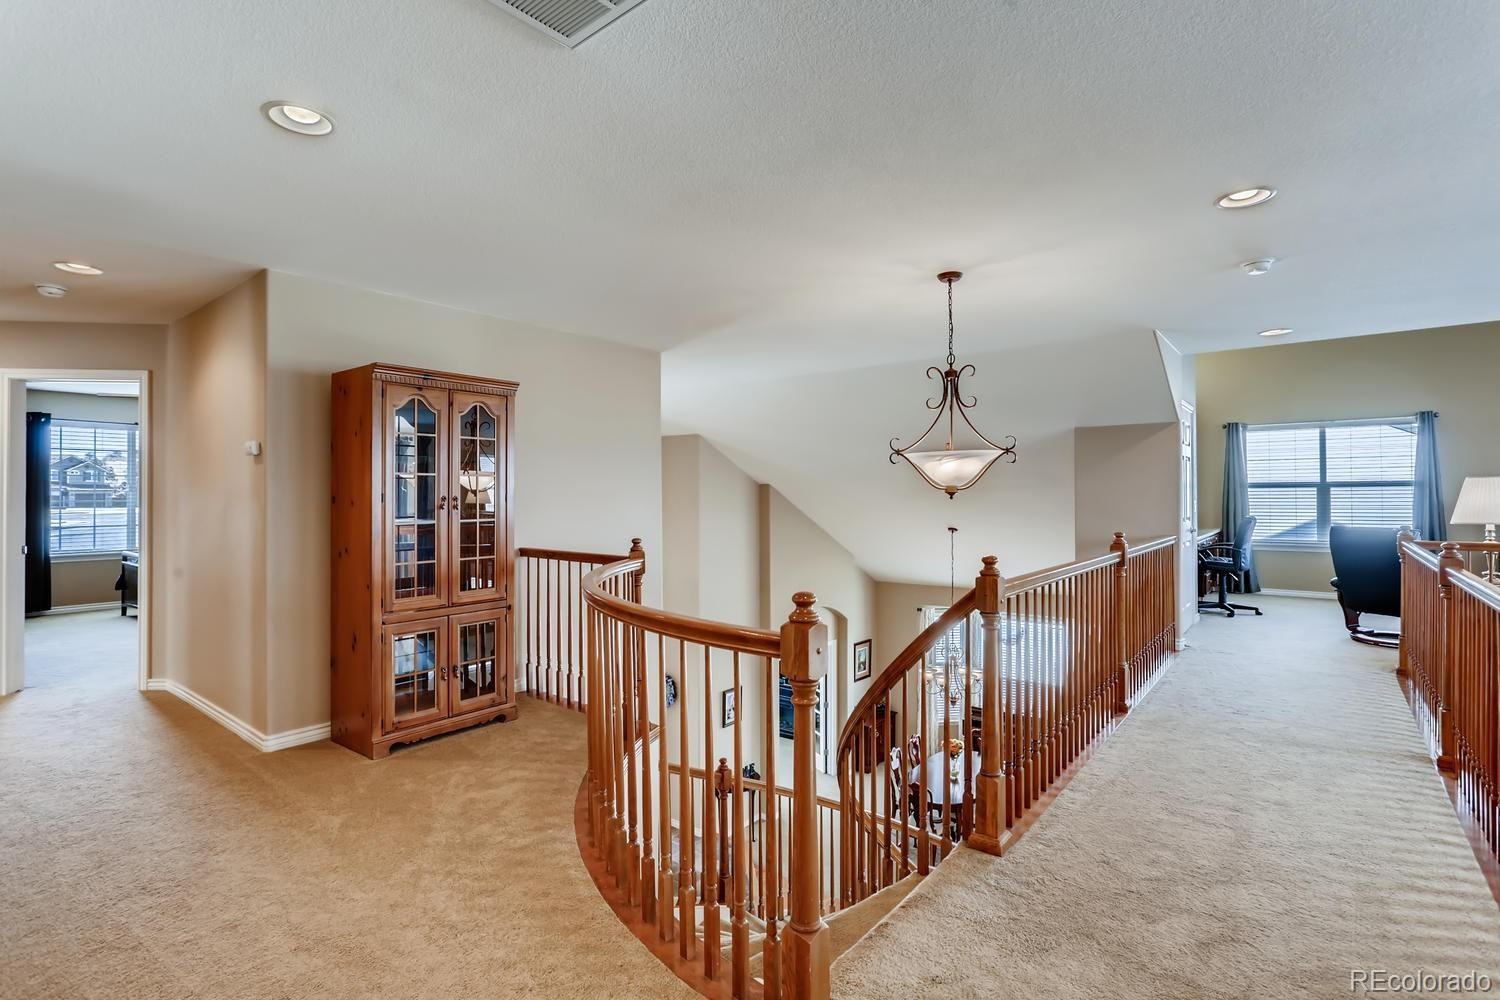 MLS# 8549809 - 1 - 7354  Iridium Way, Castle Rock, CO 80108